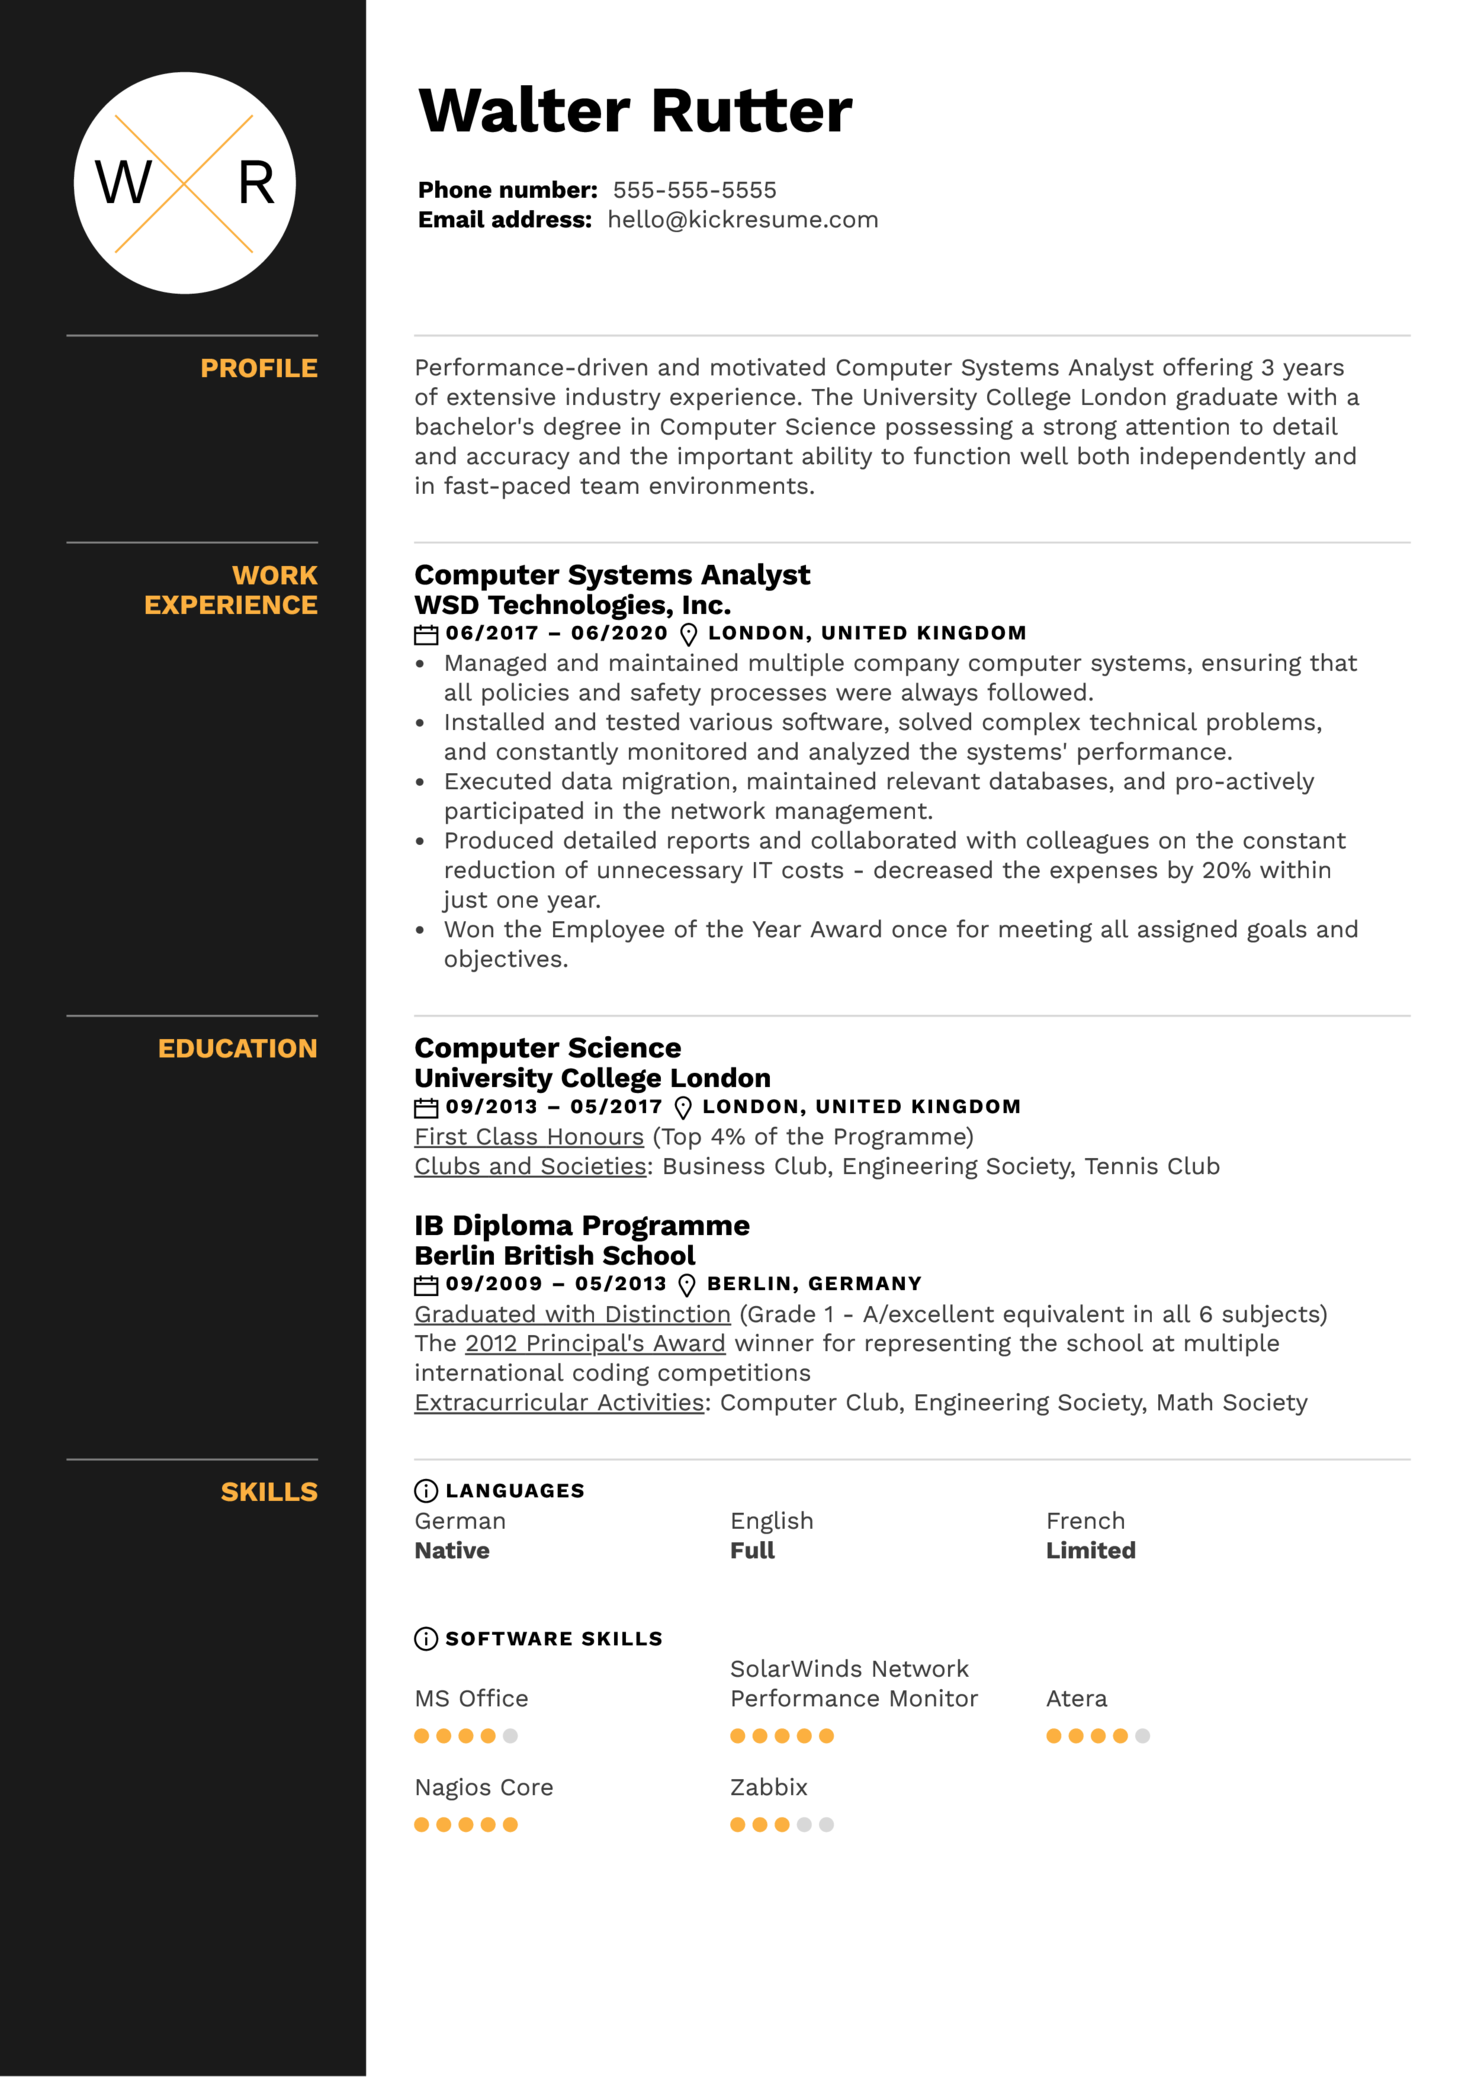 Computer Systems Analyst Resume Sample (Parte 1)